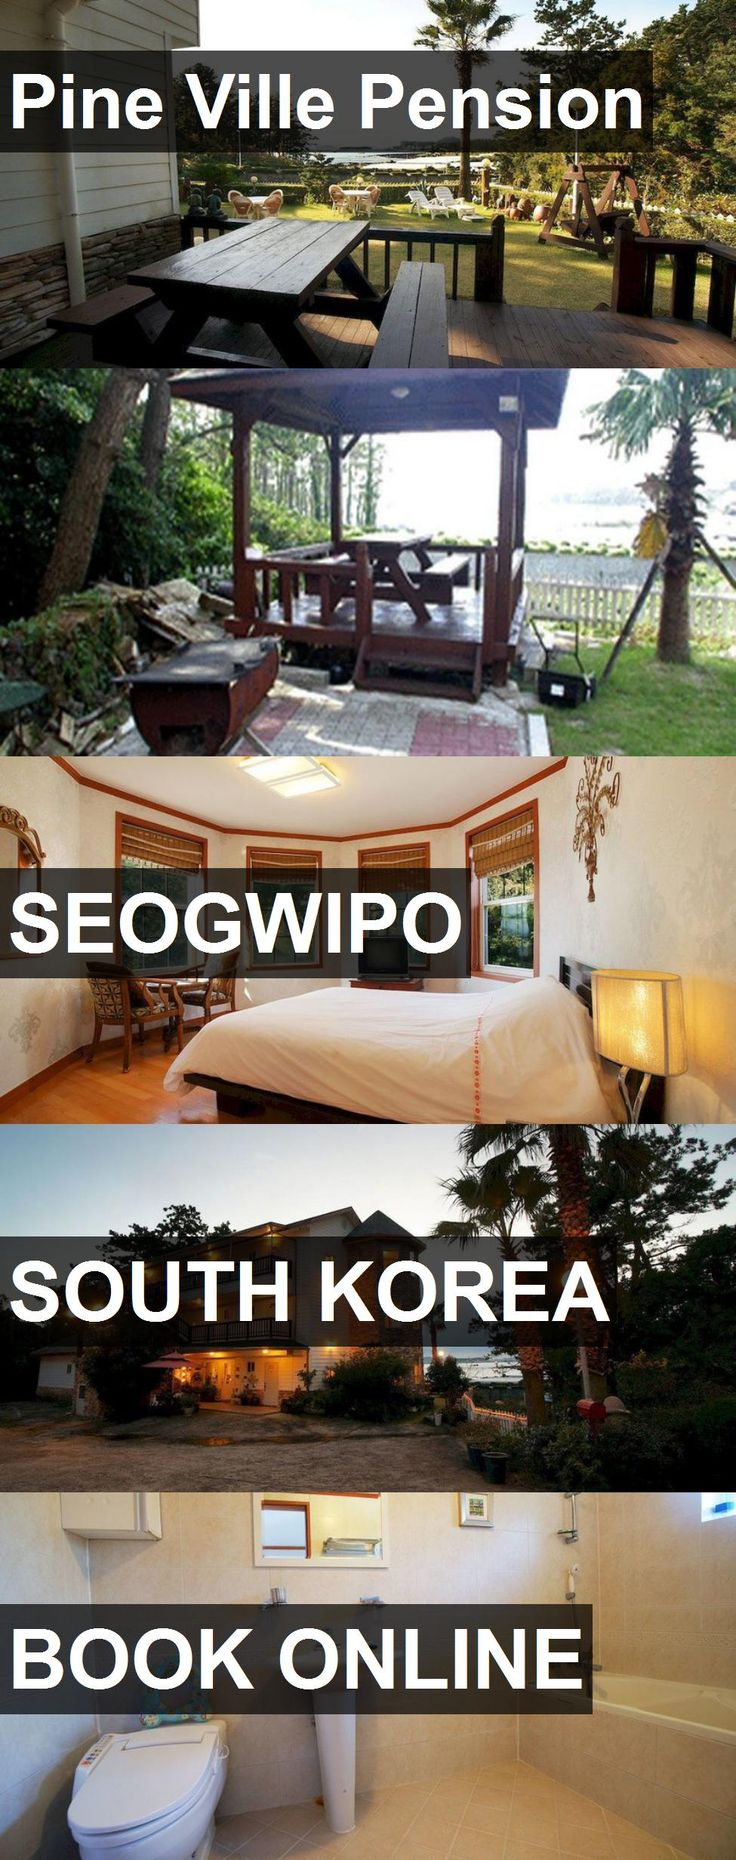 Hotel Pine Ville Pension in Seogwipo, South Korea. For more information, photos, reviews and best prices please follow the link. #SouthKorea #Seogwipo #travel #vacation #hotel